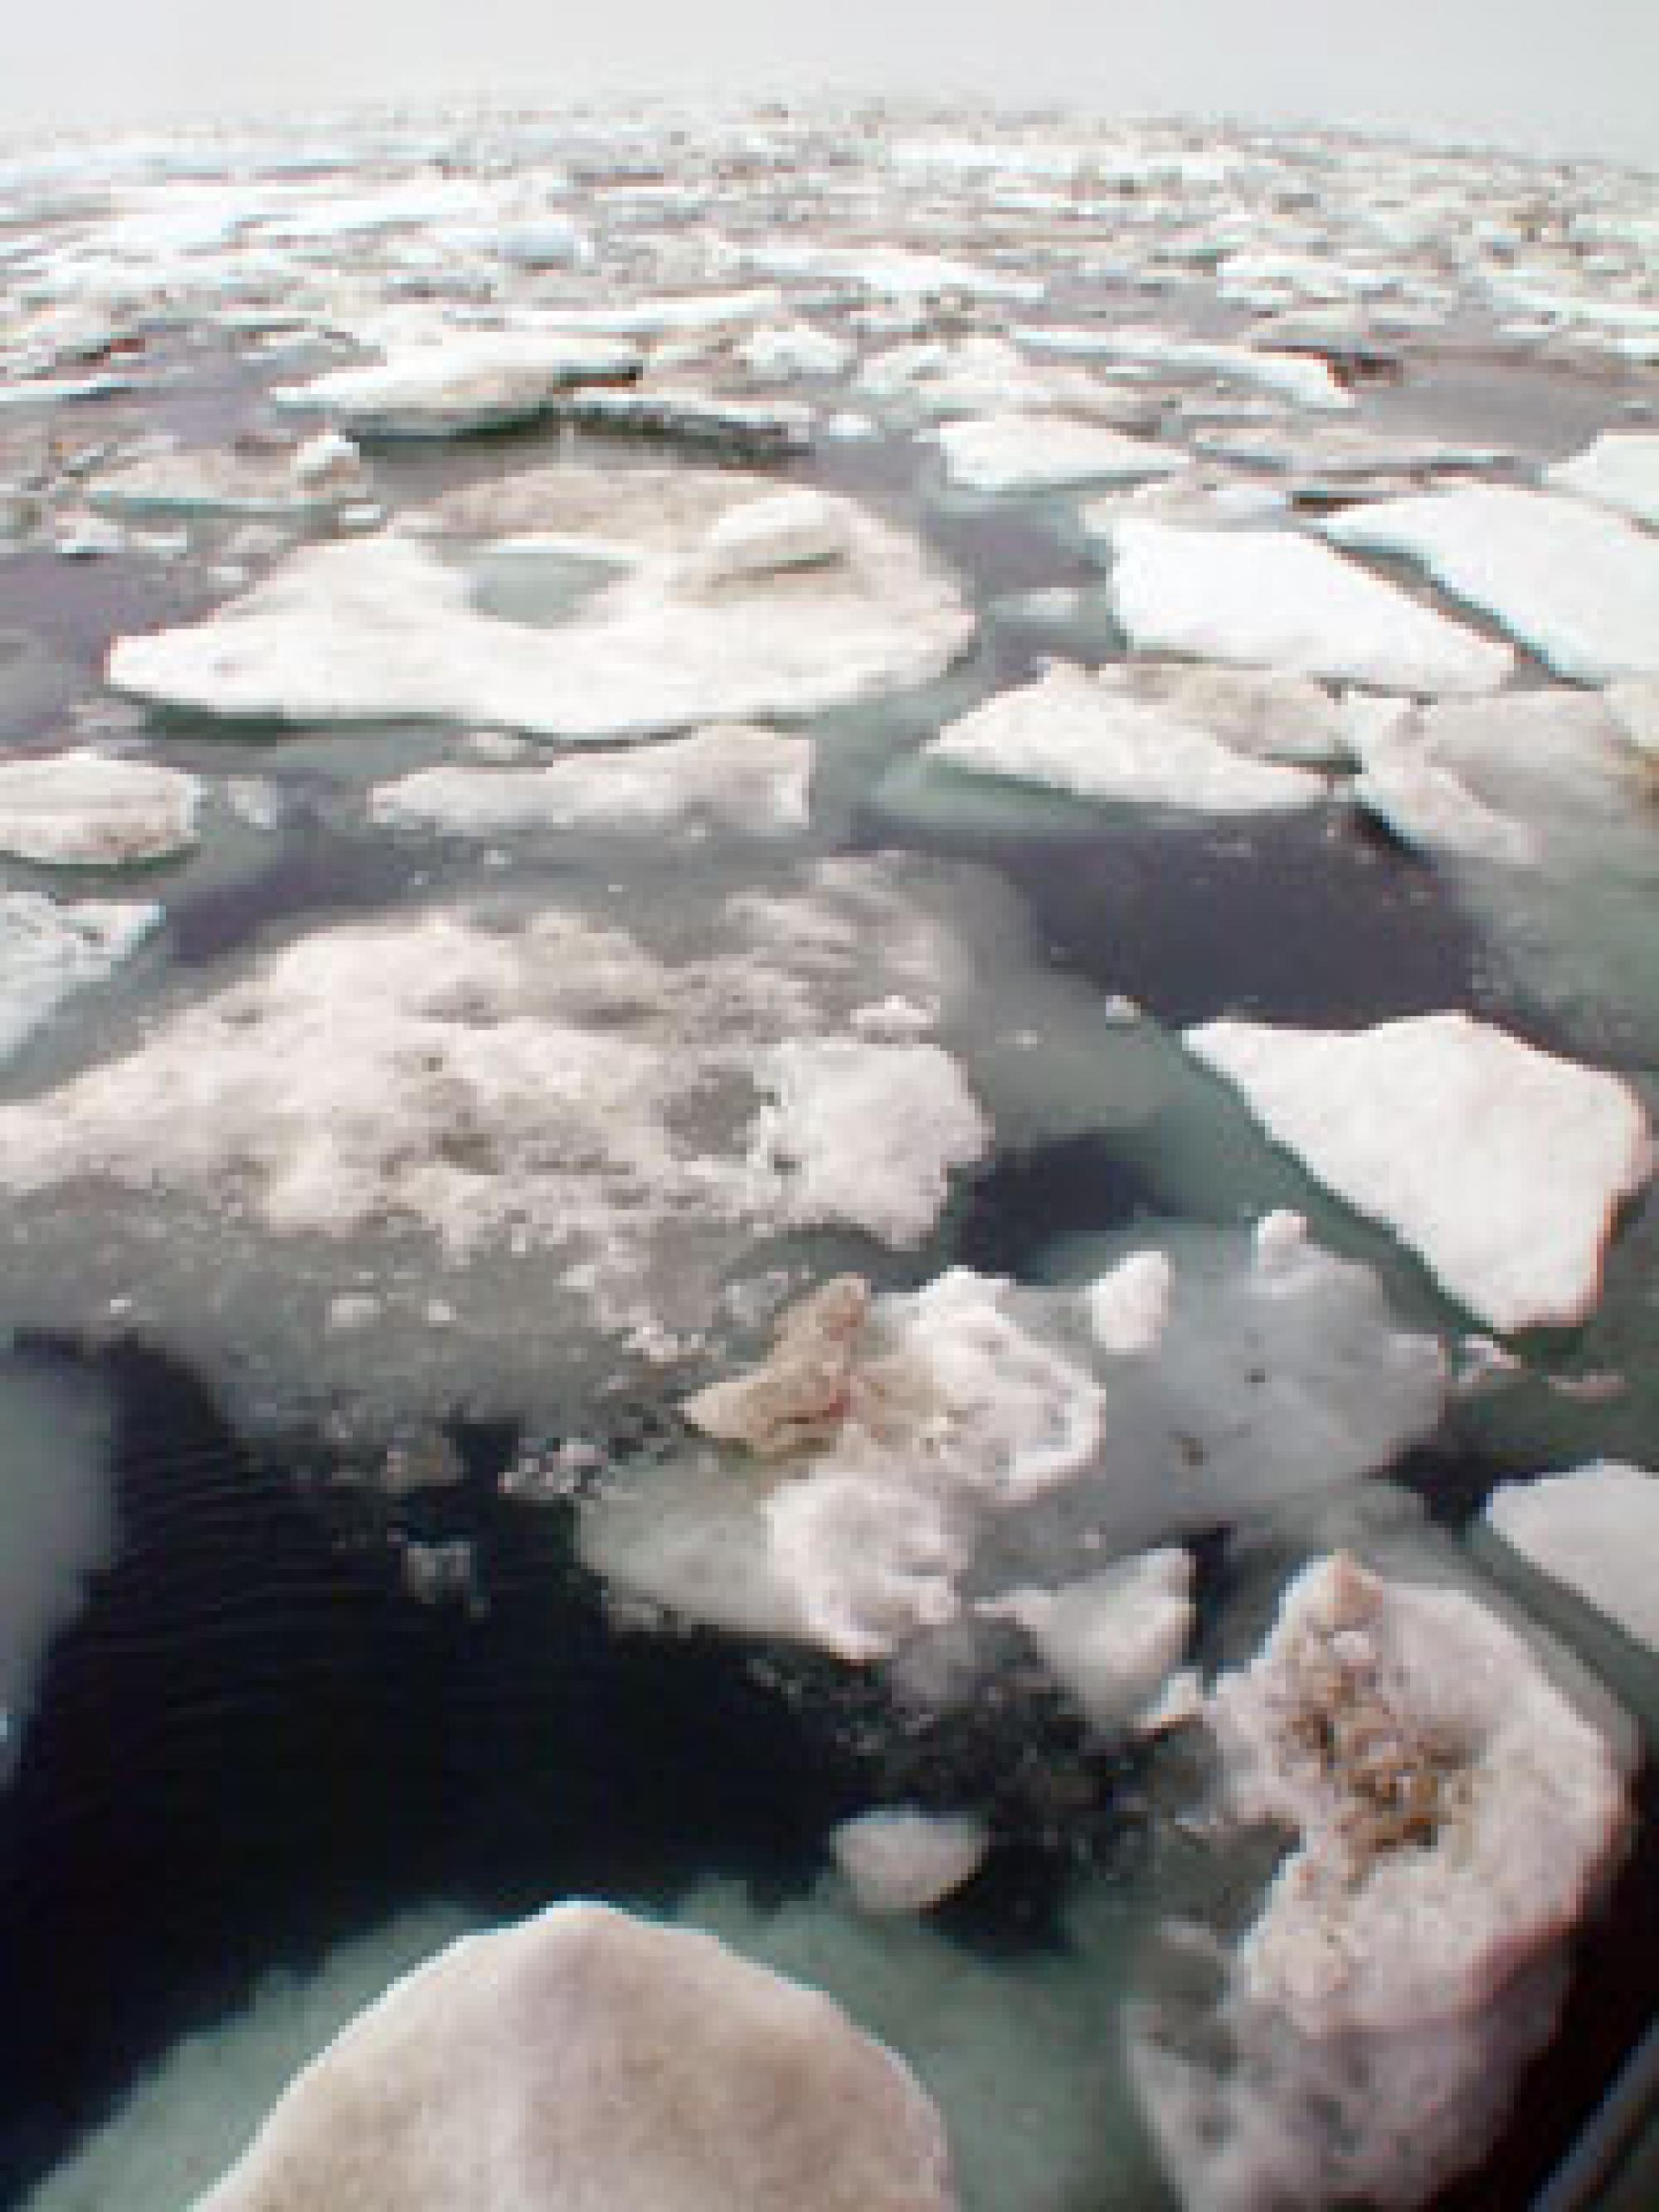 Melting Arctic sea ice is some evidence that climate is changing.